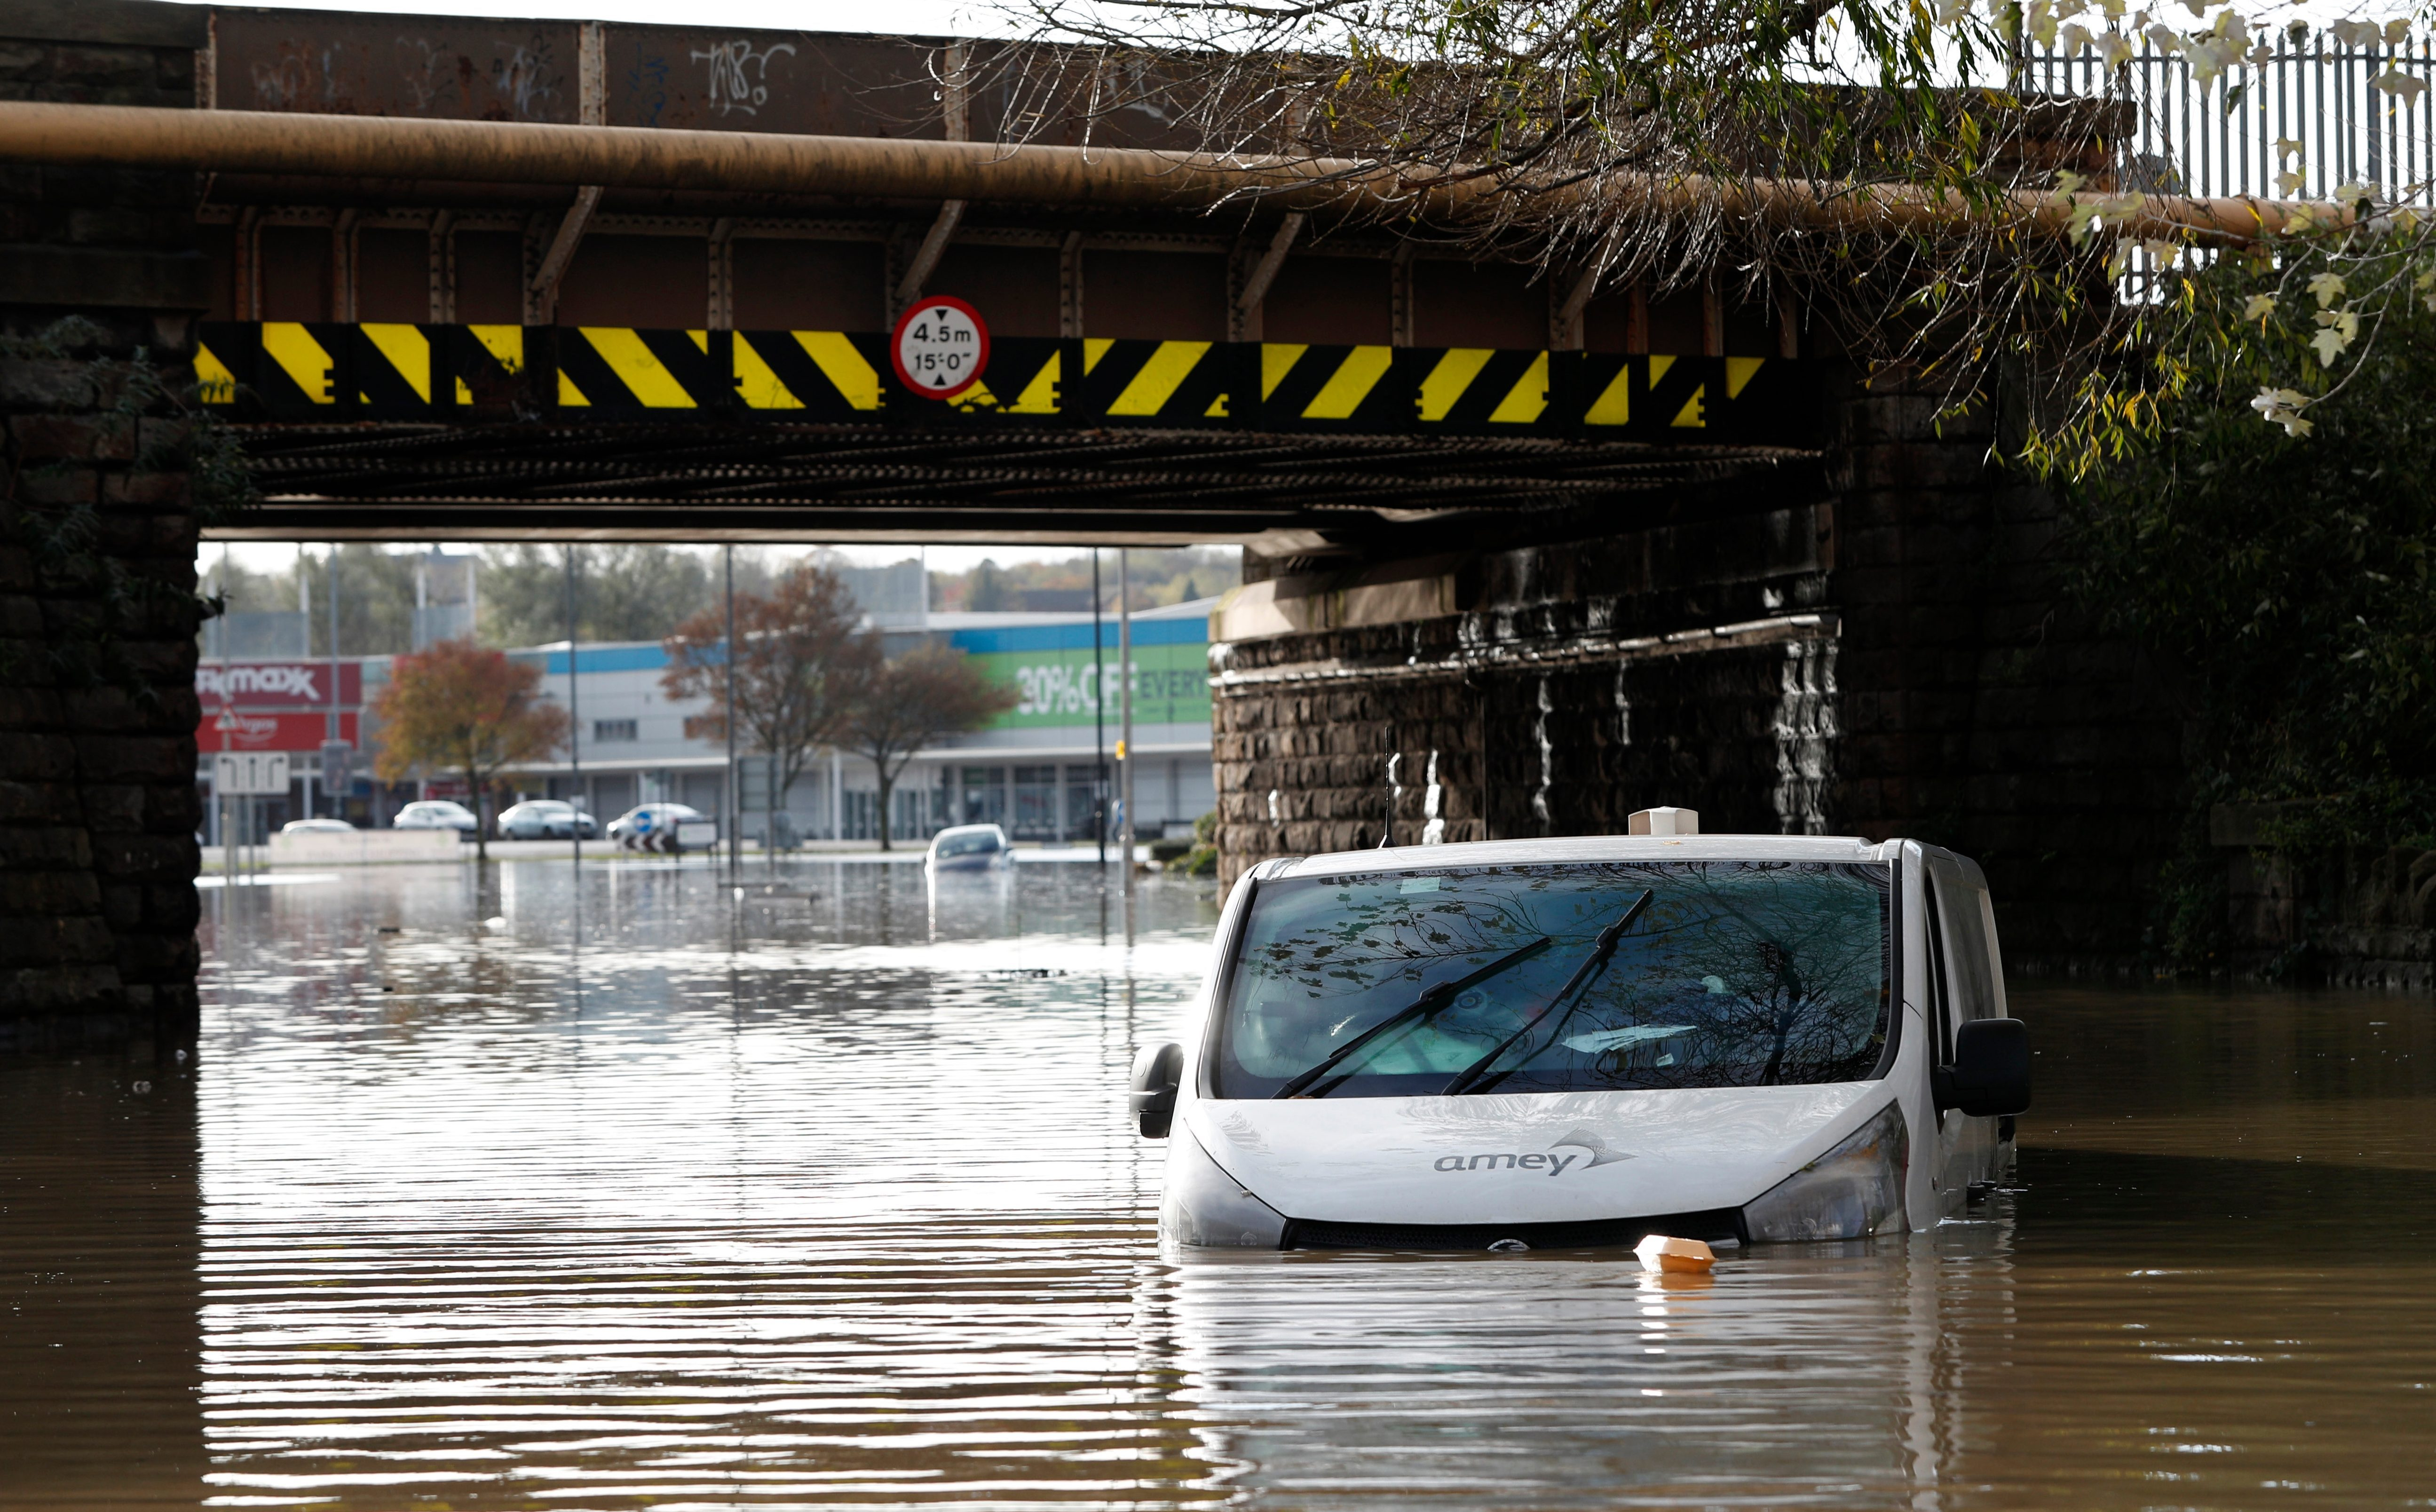 A van stands in flood water after the River Don burst its banks